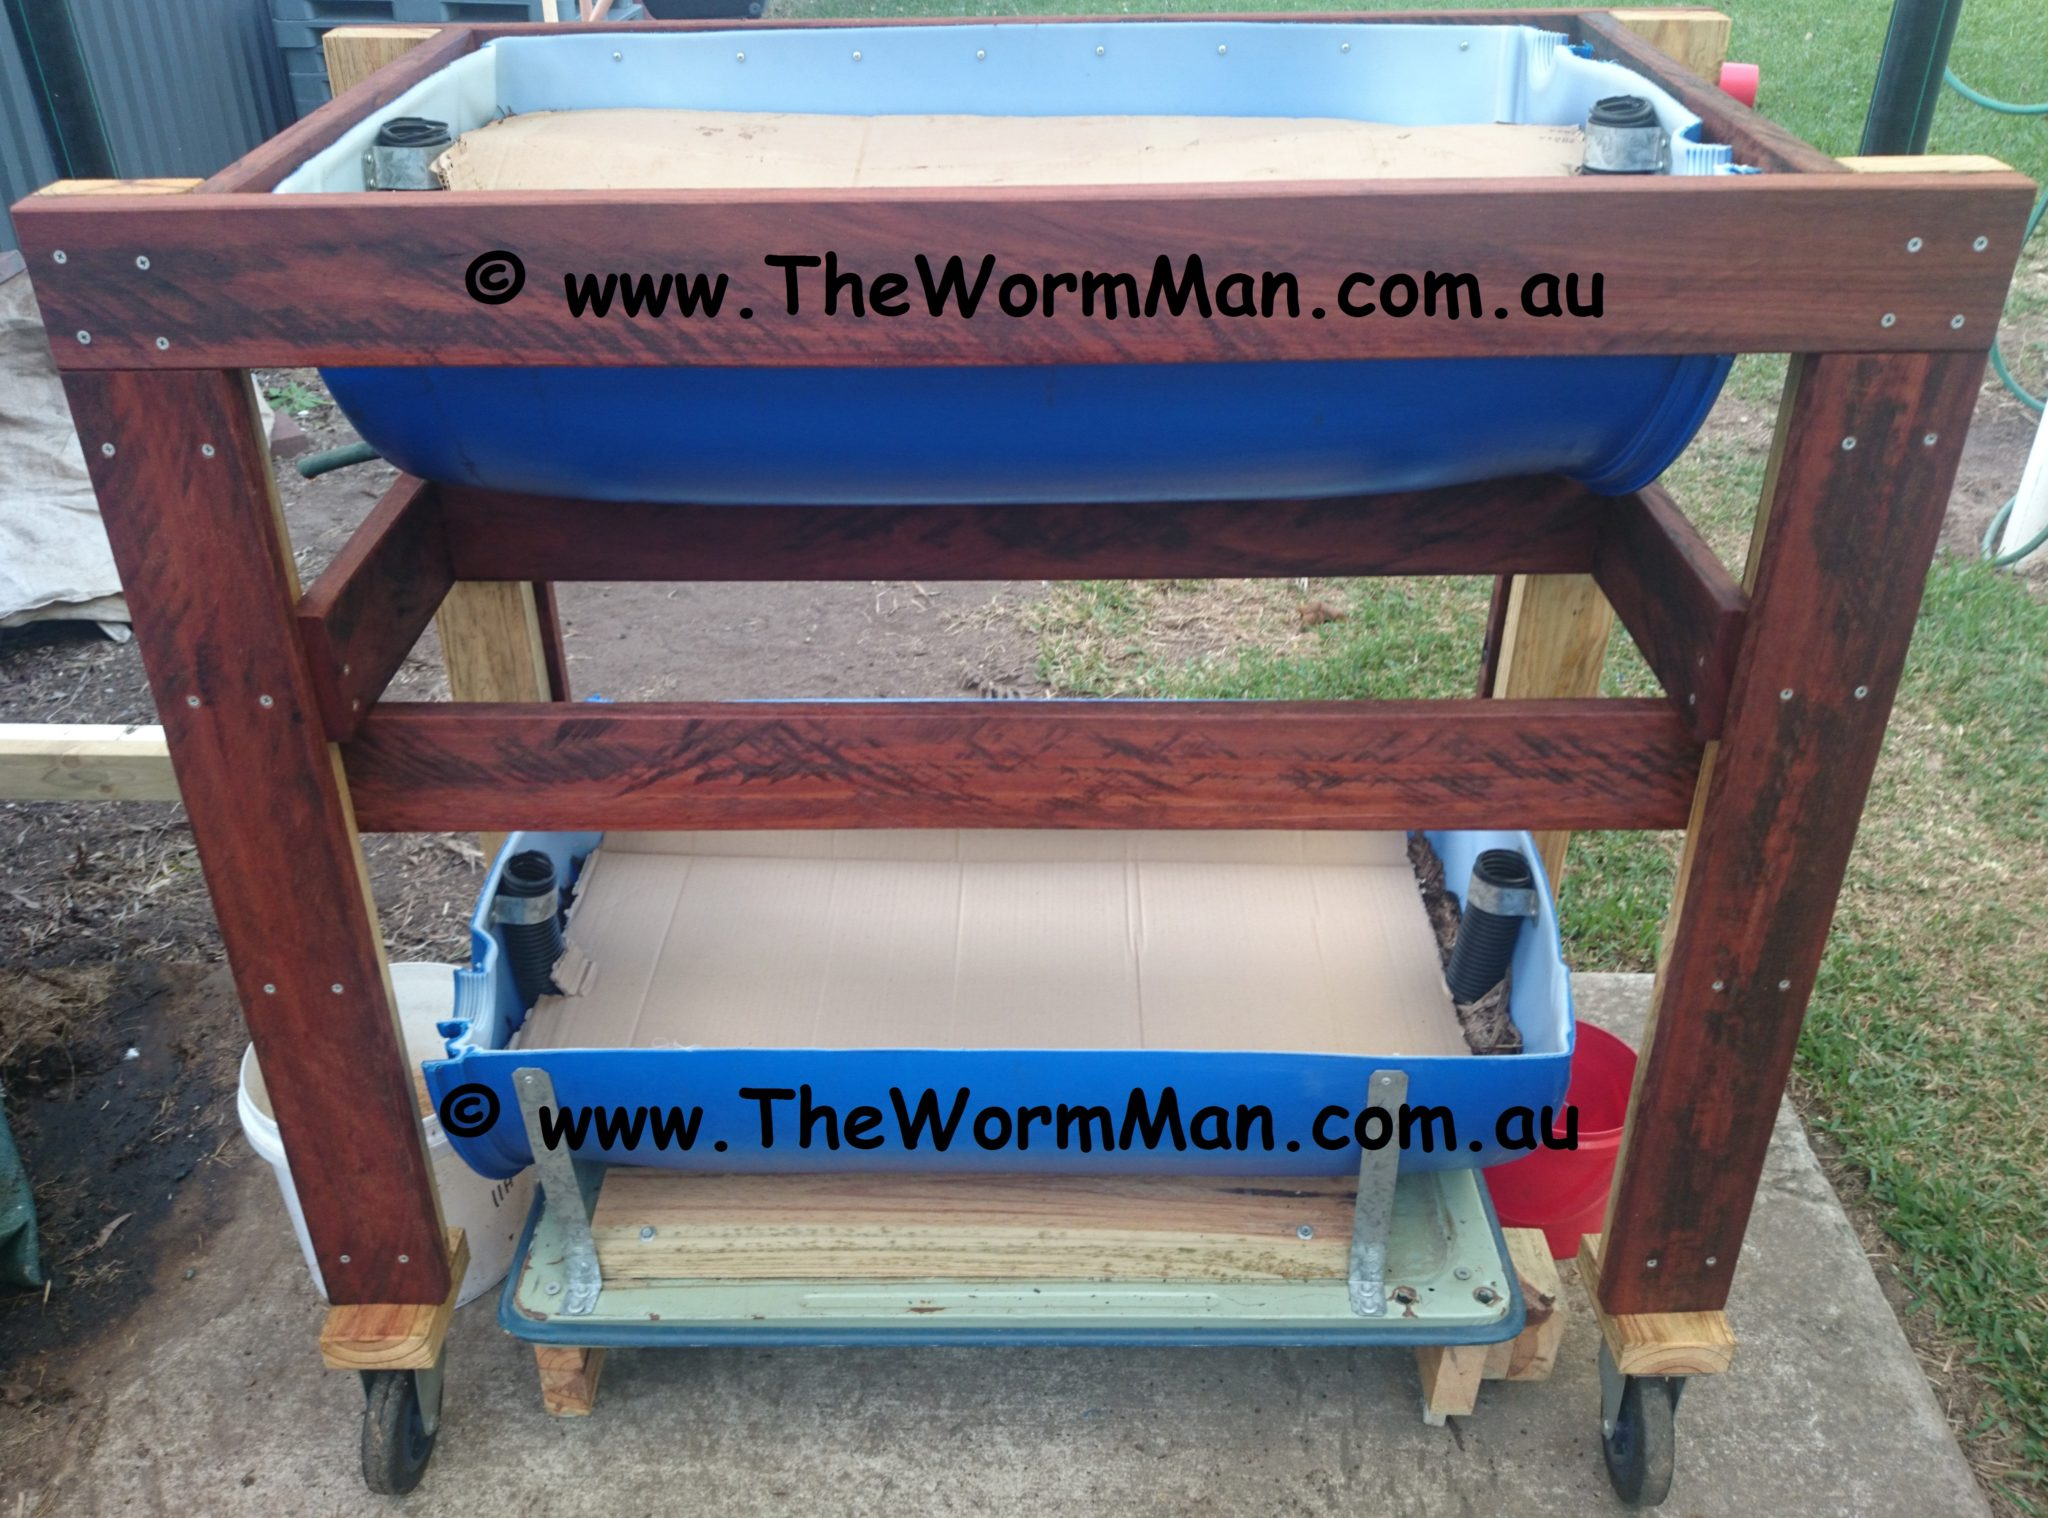 How to build a worm farm worms for worm farms fishing for Fishing worm farm